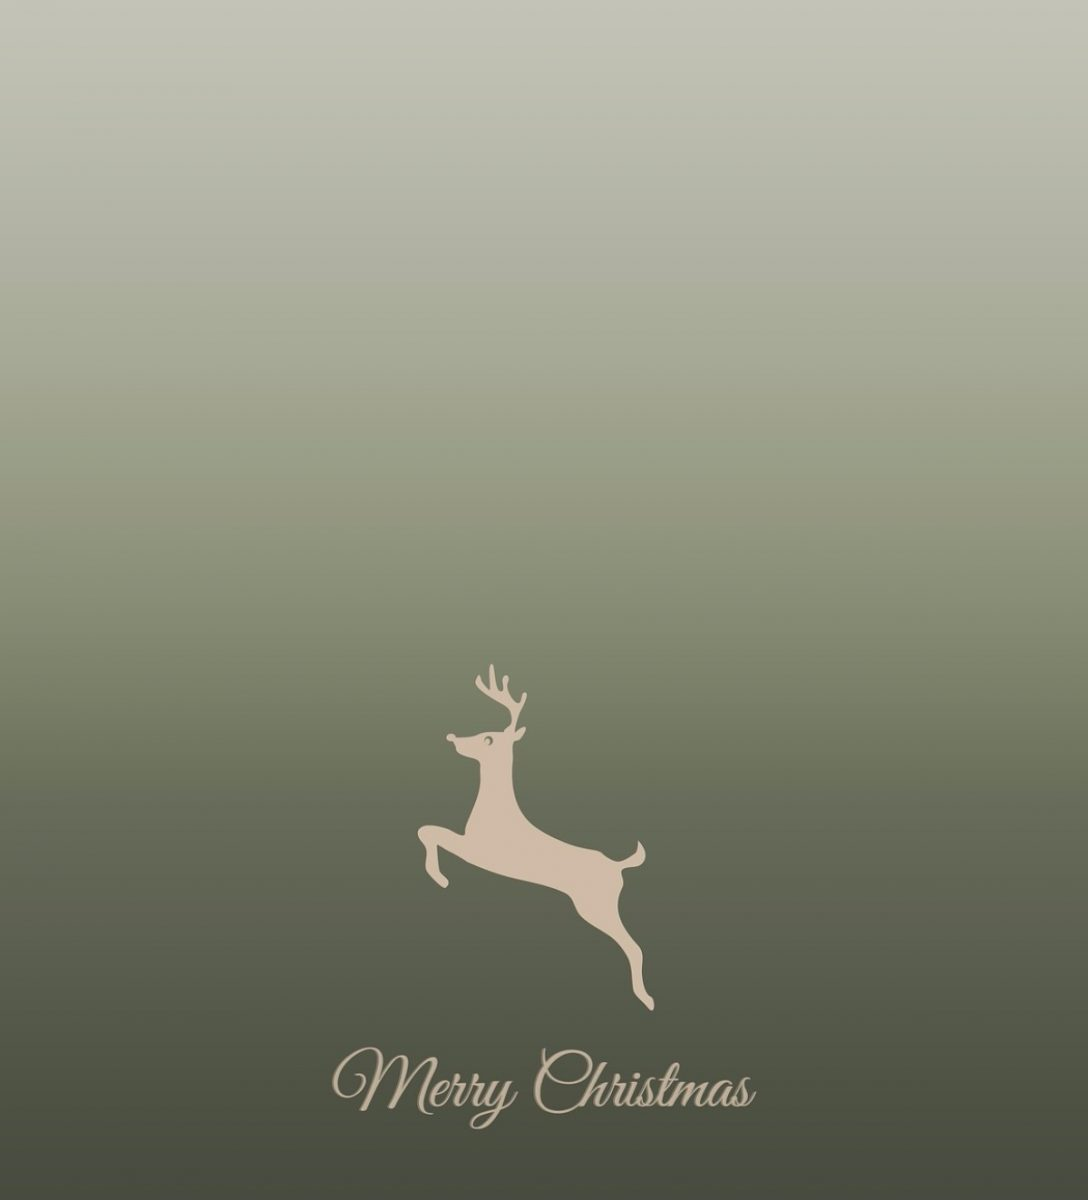 Merry Christmas Jumping Deer